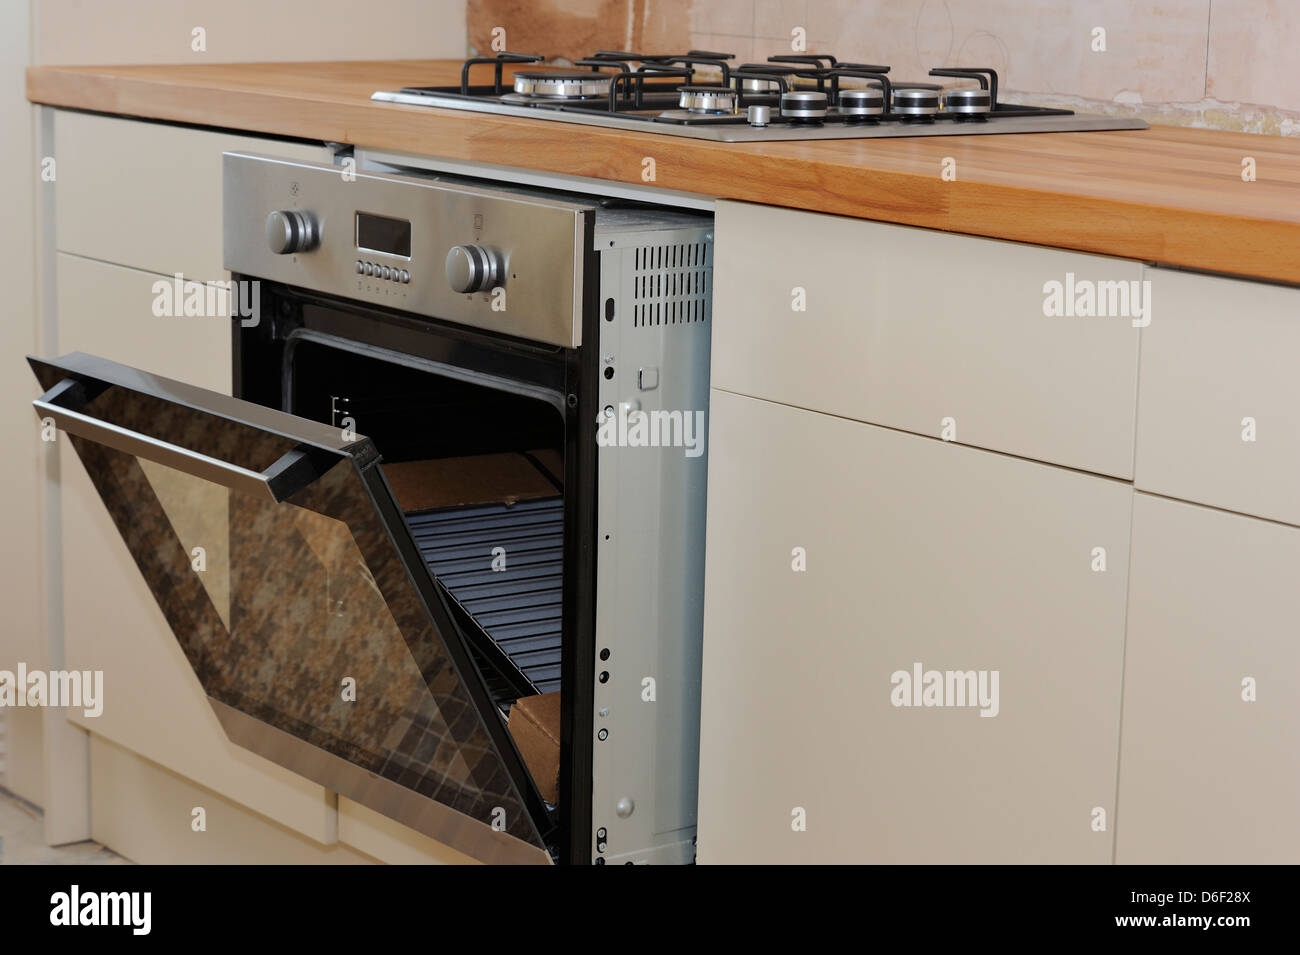 A New Electric Oven And Gas Hob Being Fitted In A Bespoke Kitchen Stock  Photo: 55650138   Alamy